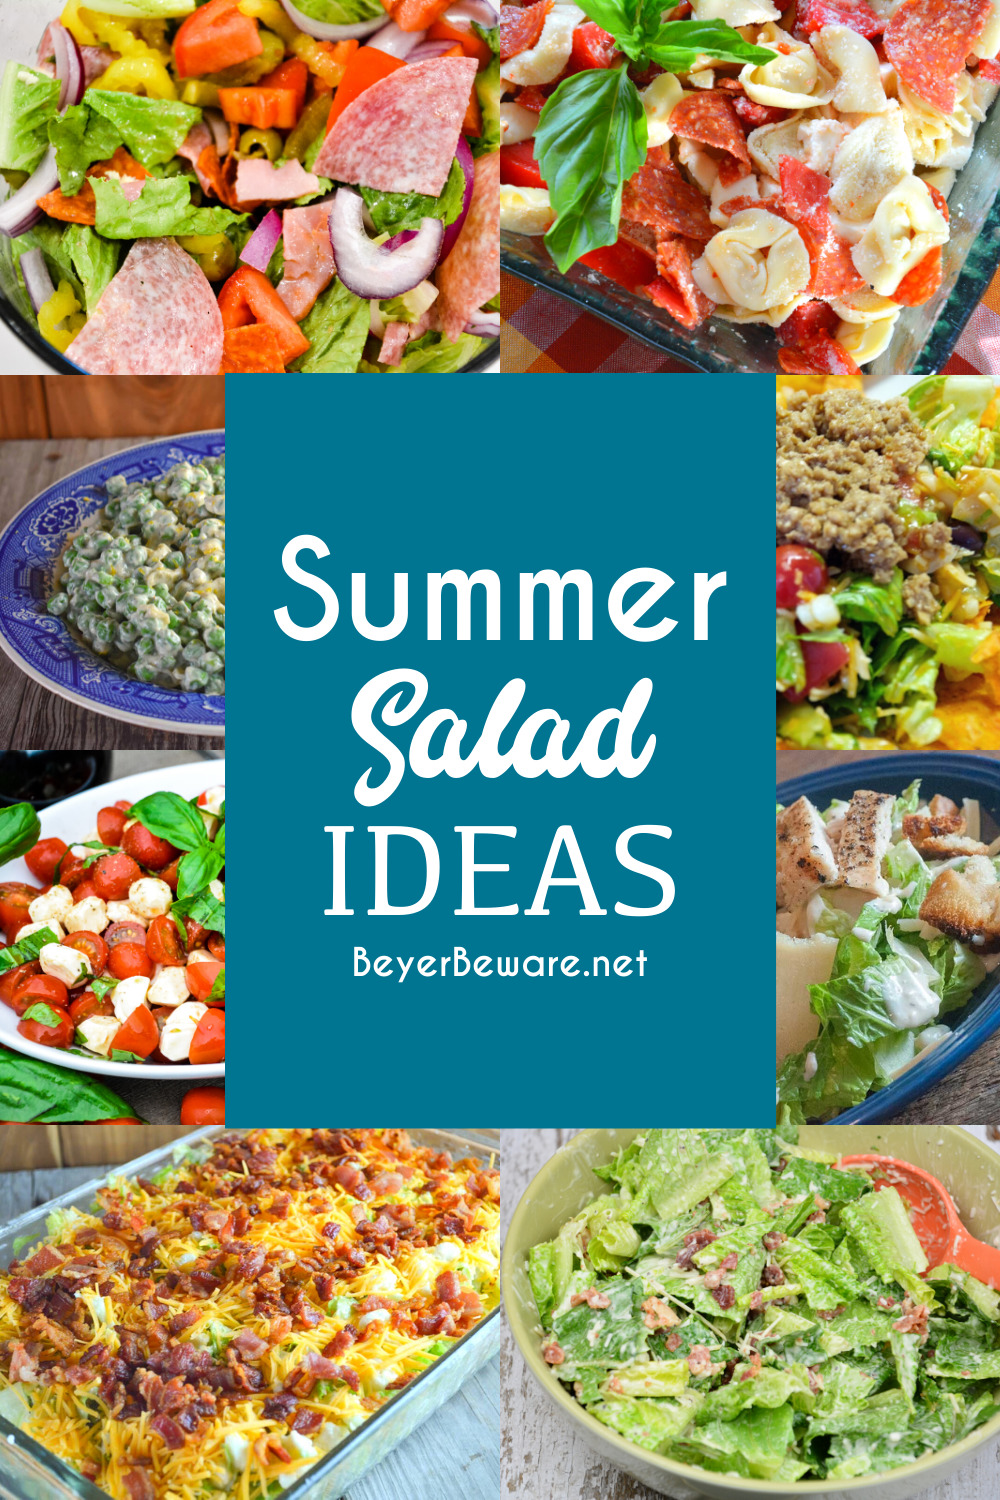 The perfect summer salad ideas.